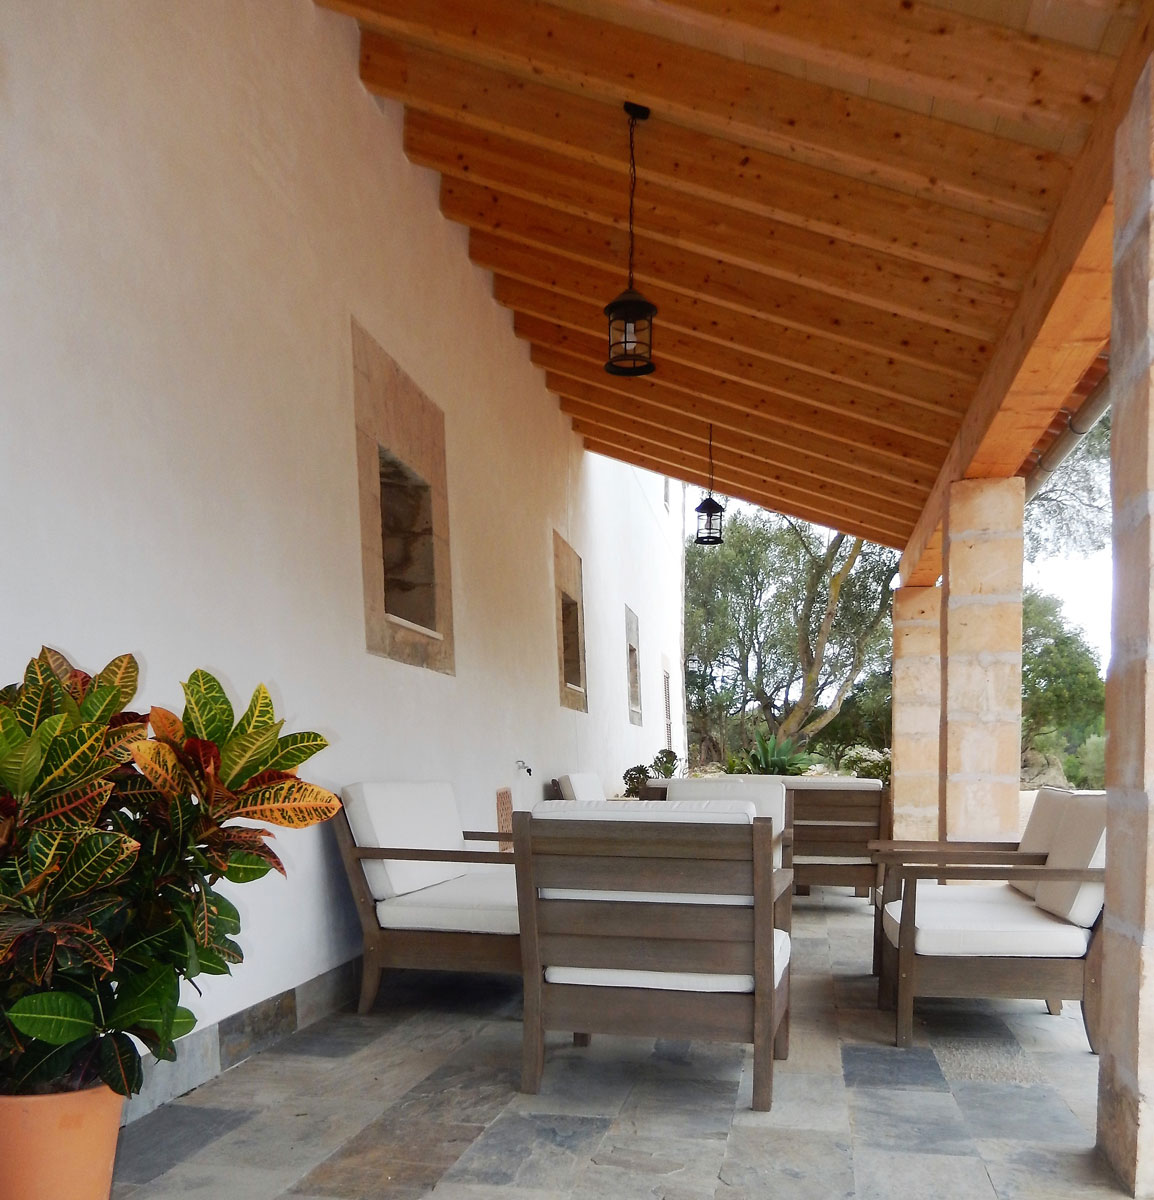 61Mallorca,holidays,countryhouse,finequality,pool,relax